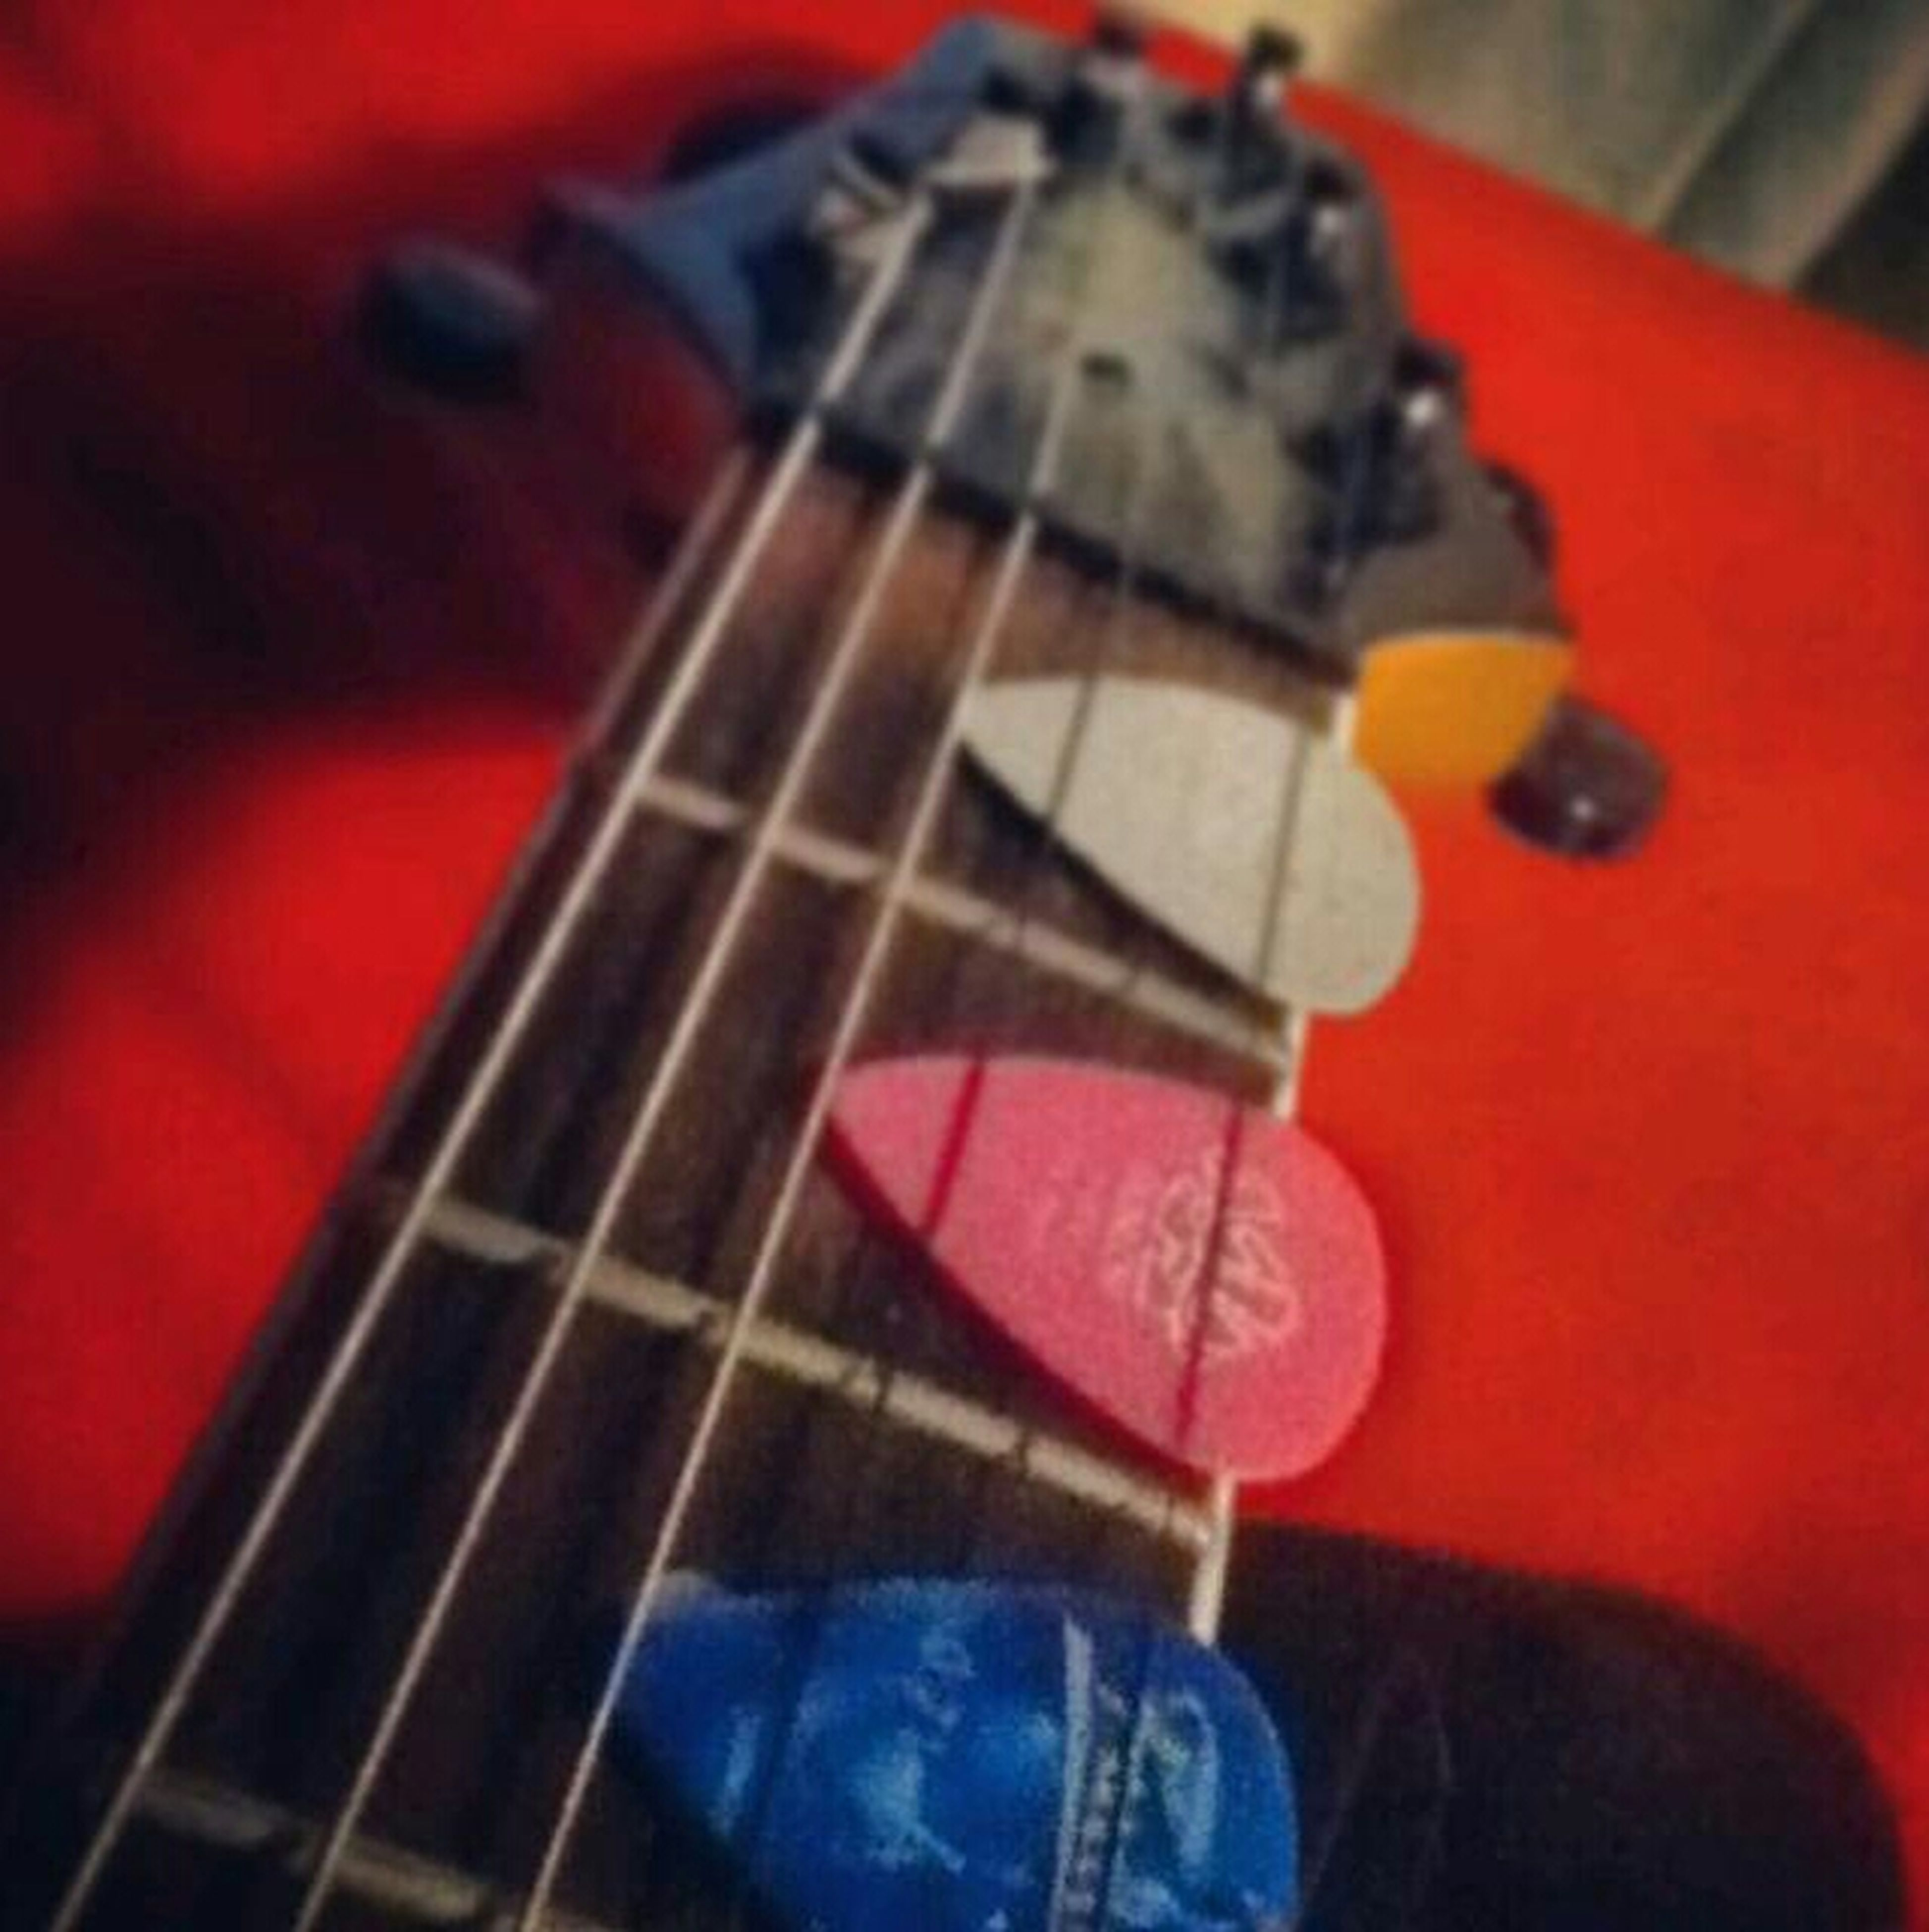 music, musical instrument, arts culture and entertainment, guitar, indoors, musical equipment, musical instrument string, selective focus, red, close-up, hobbies, focus on foreground, acoustic guitar, string instrument, part of, skill, playing, single object